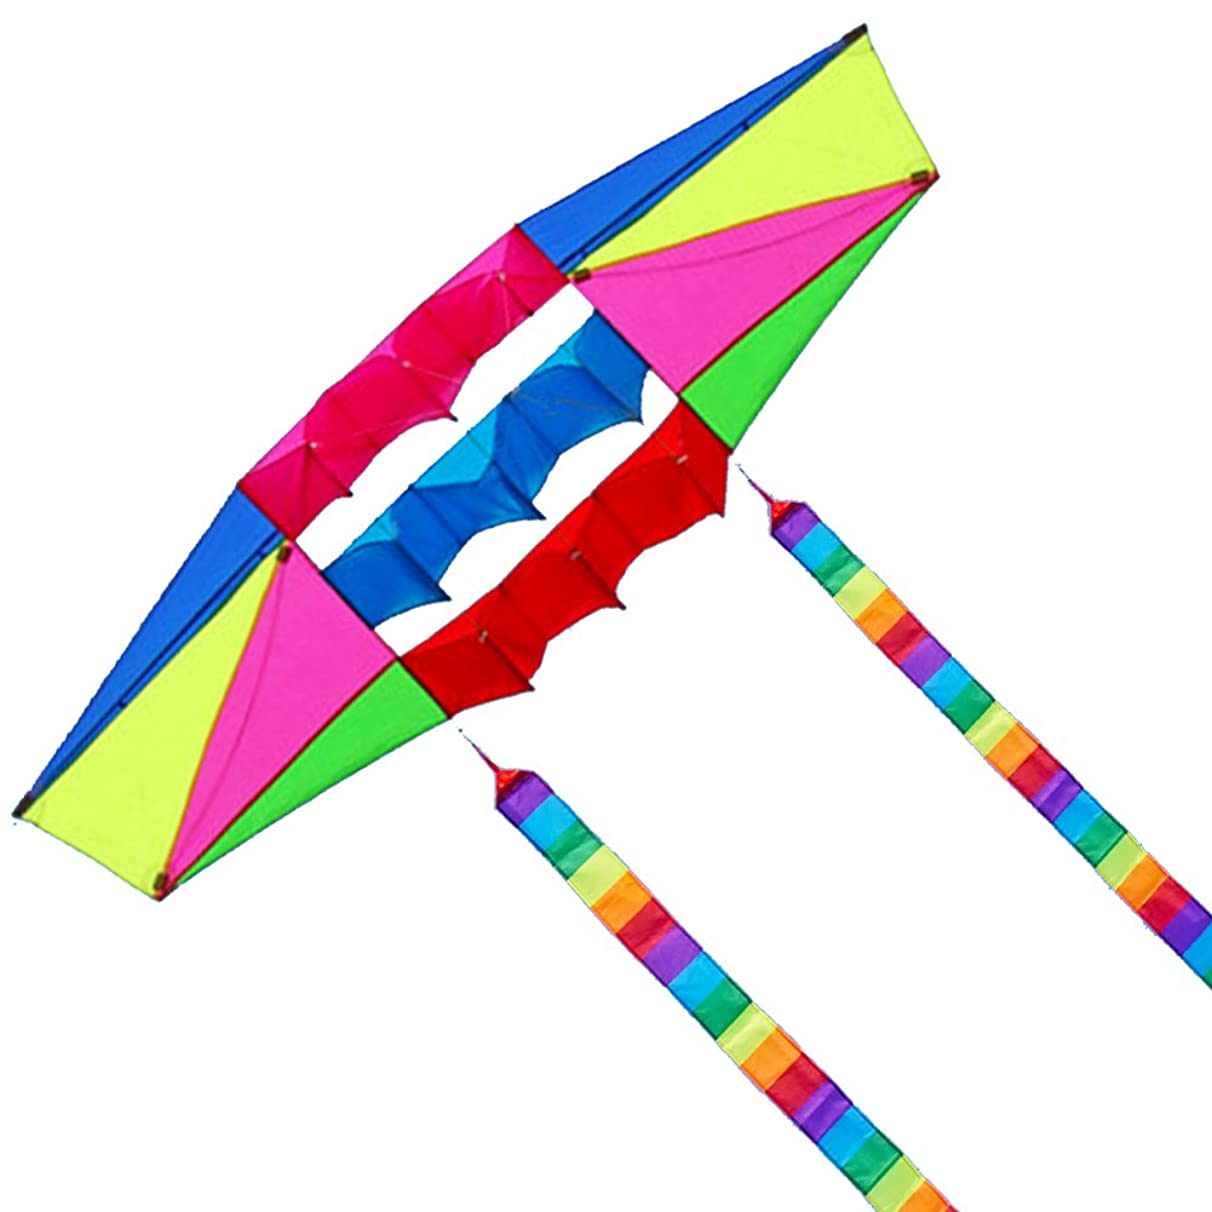 Besra Huge 98inch Single Line 3D Radar Kite with Flying Tools 2.5m Power Box Kites with 2 Tails Outdoor Fun Sports for Adults